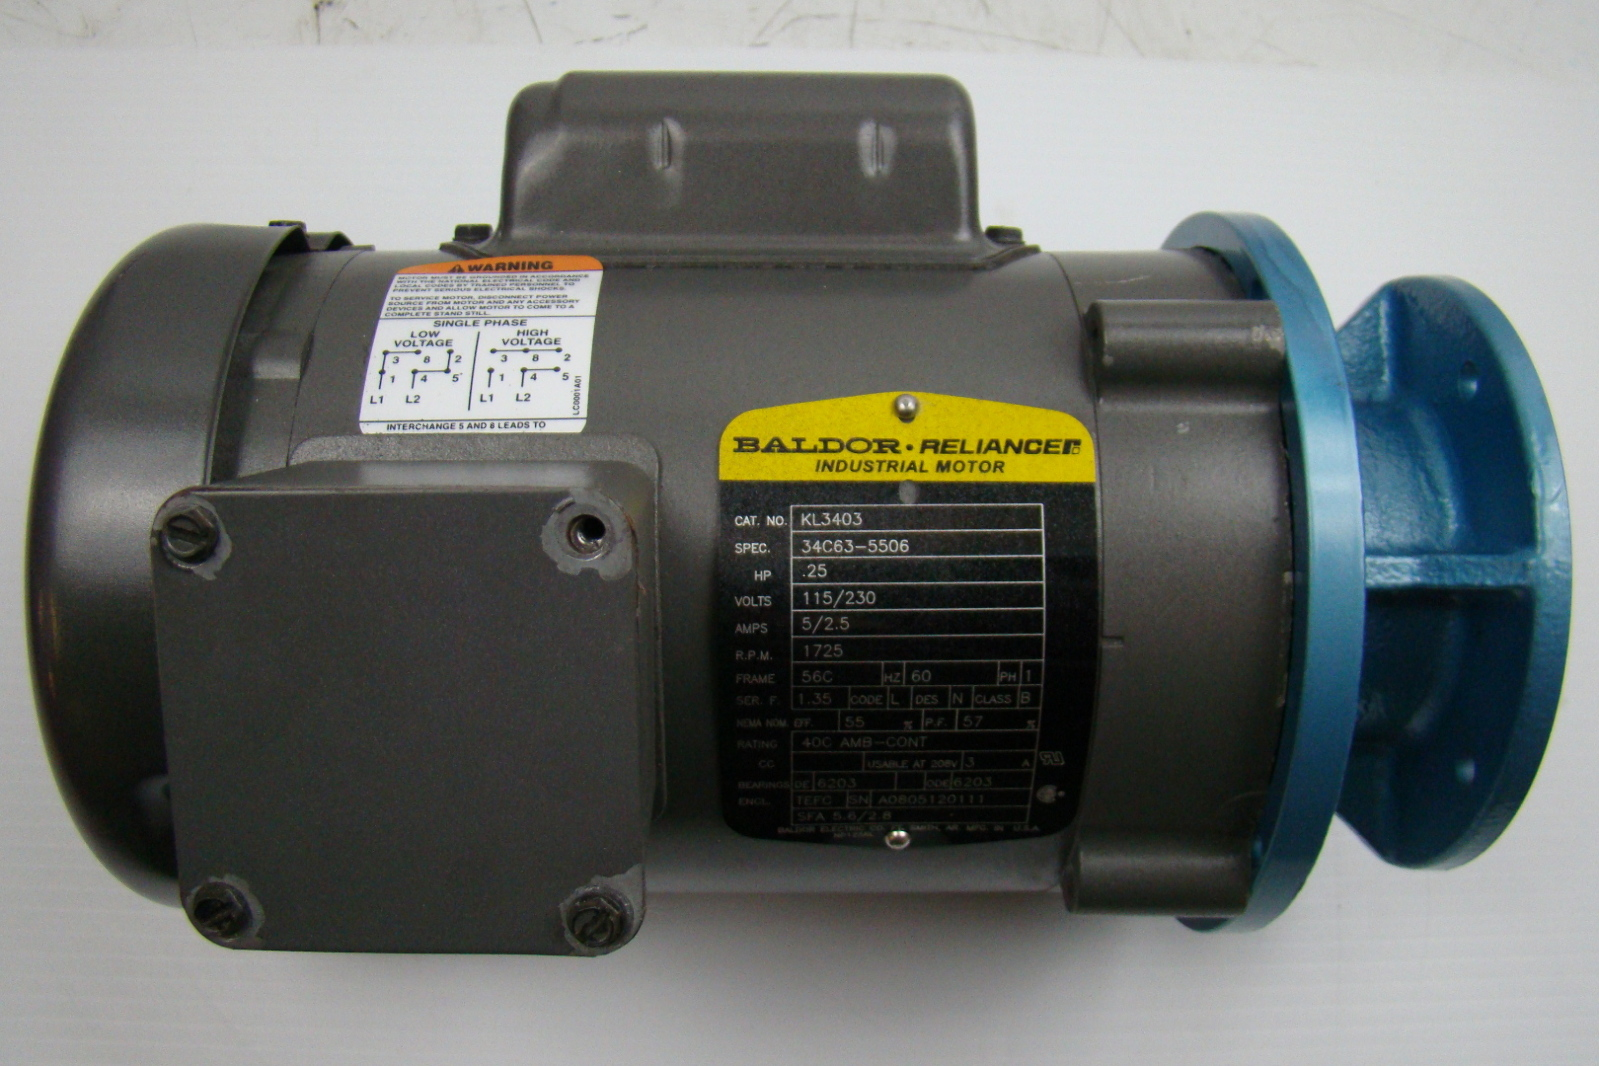 jf00641 baldor 14 hp industrial motor 115230v single phase 56c kl3403 baldor 1 4 hp industrial motor 115 230v single phase 56c kl3403 baldor reliance industrial motor wiring diagram at n-0.co